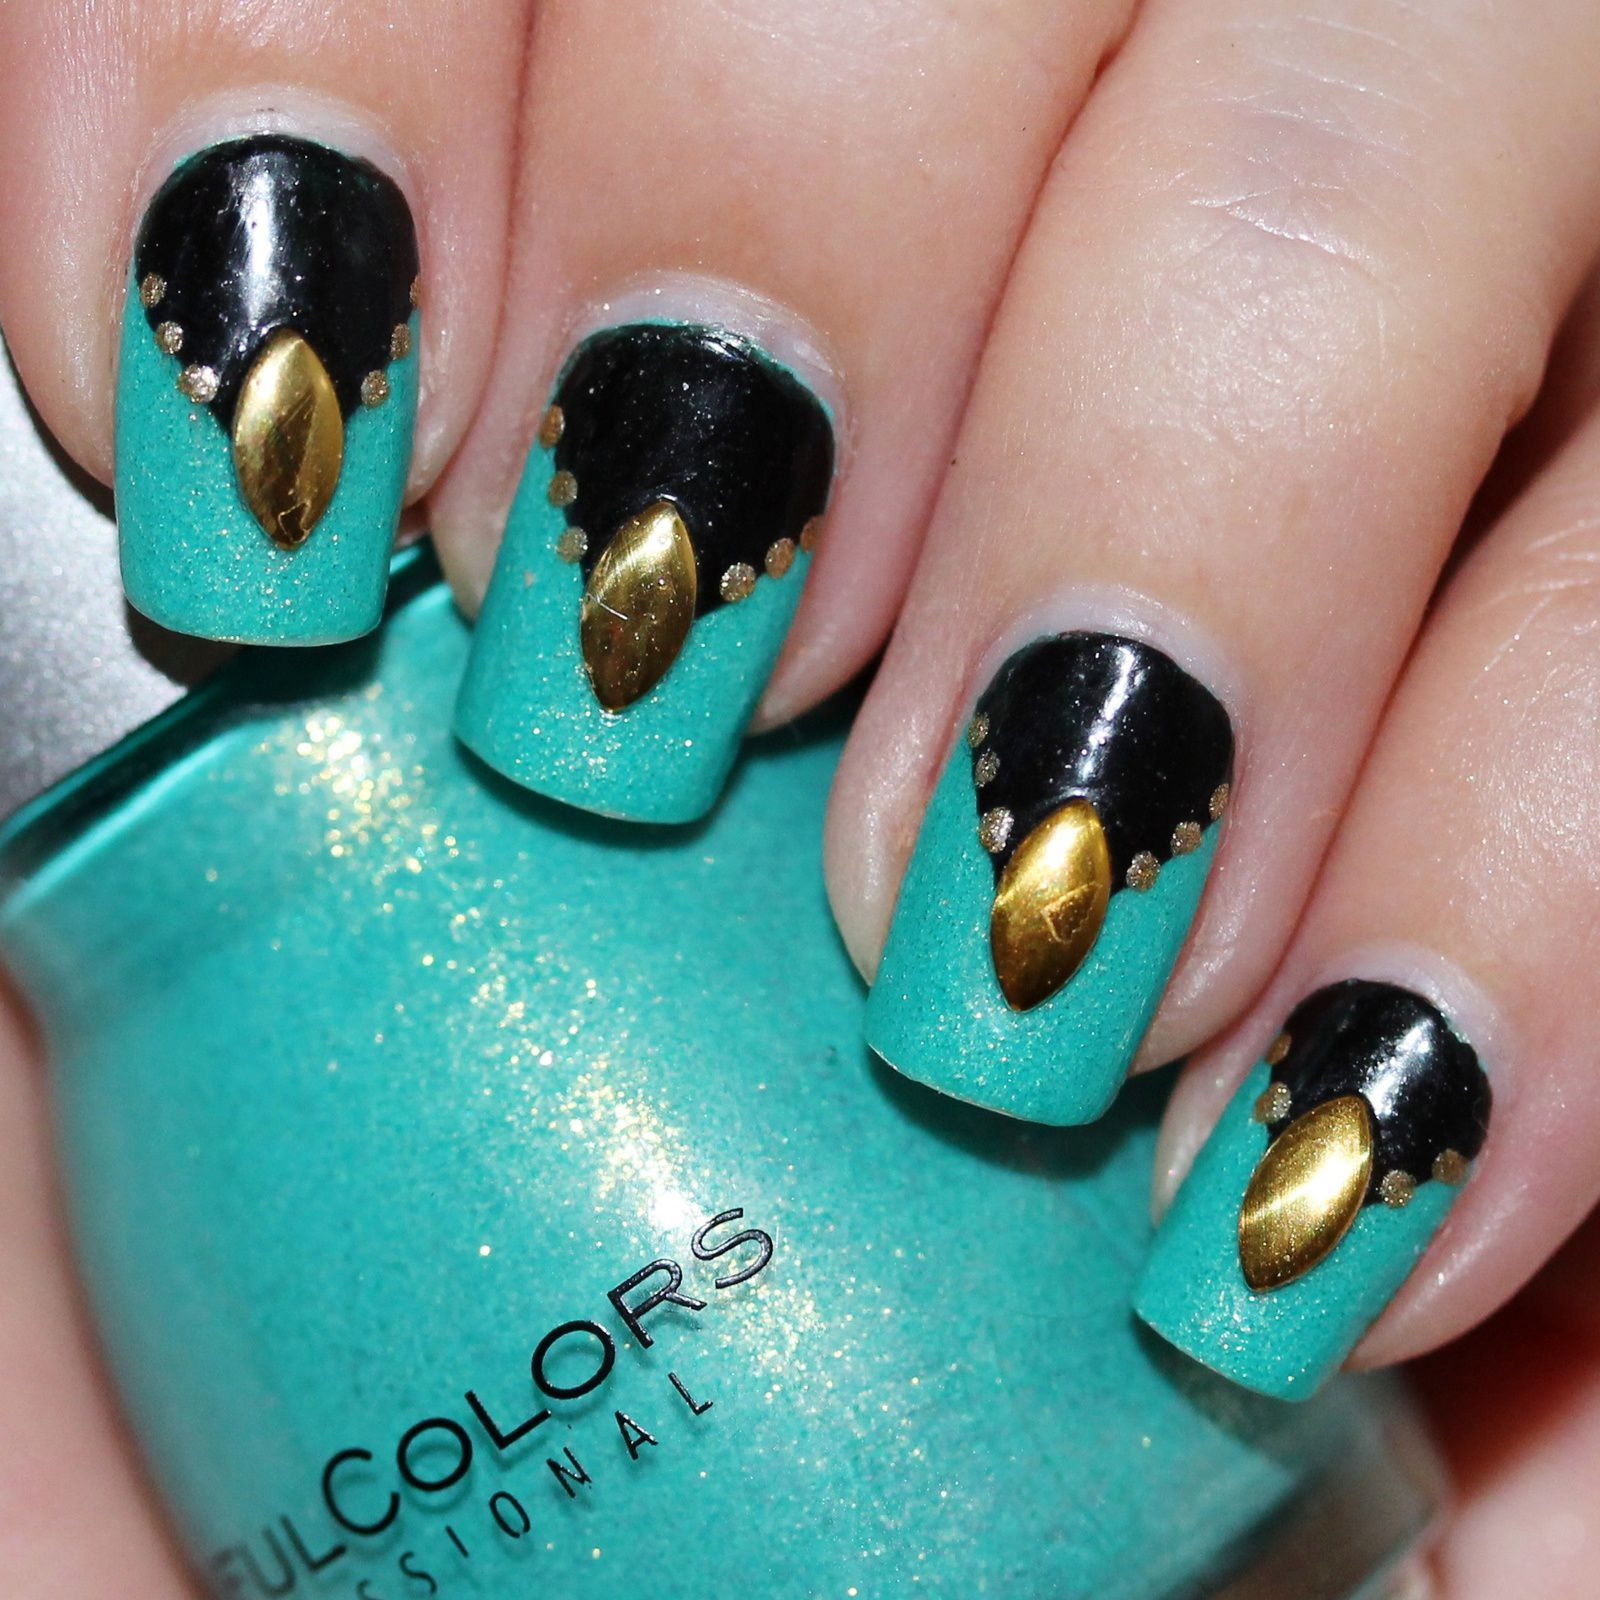 Essie Protein Base Coat / Sinful Colors Treasure Chest / Nail Pattern Boldness Glitter Food / Baltimore Ravens NFL Black Nail Polish / Color Club Disco Nap & Dotting Tool / BornPrettyStore Studs / OutTheDoor Top Coat